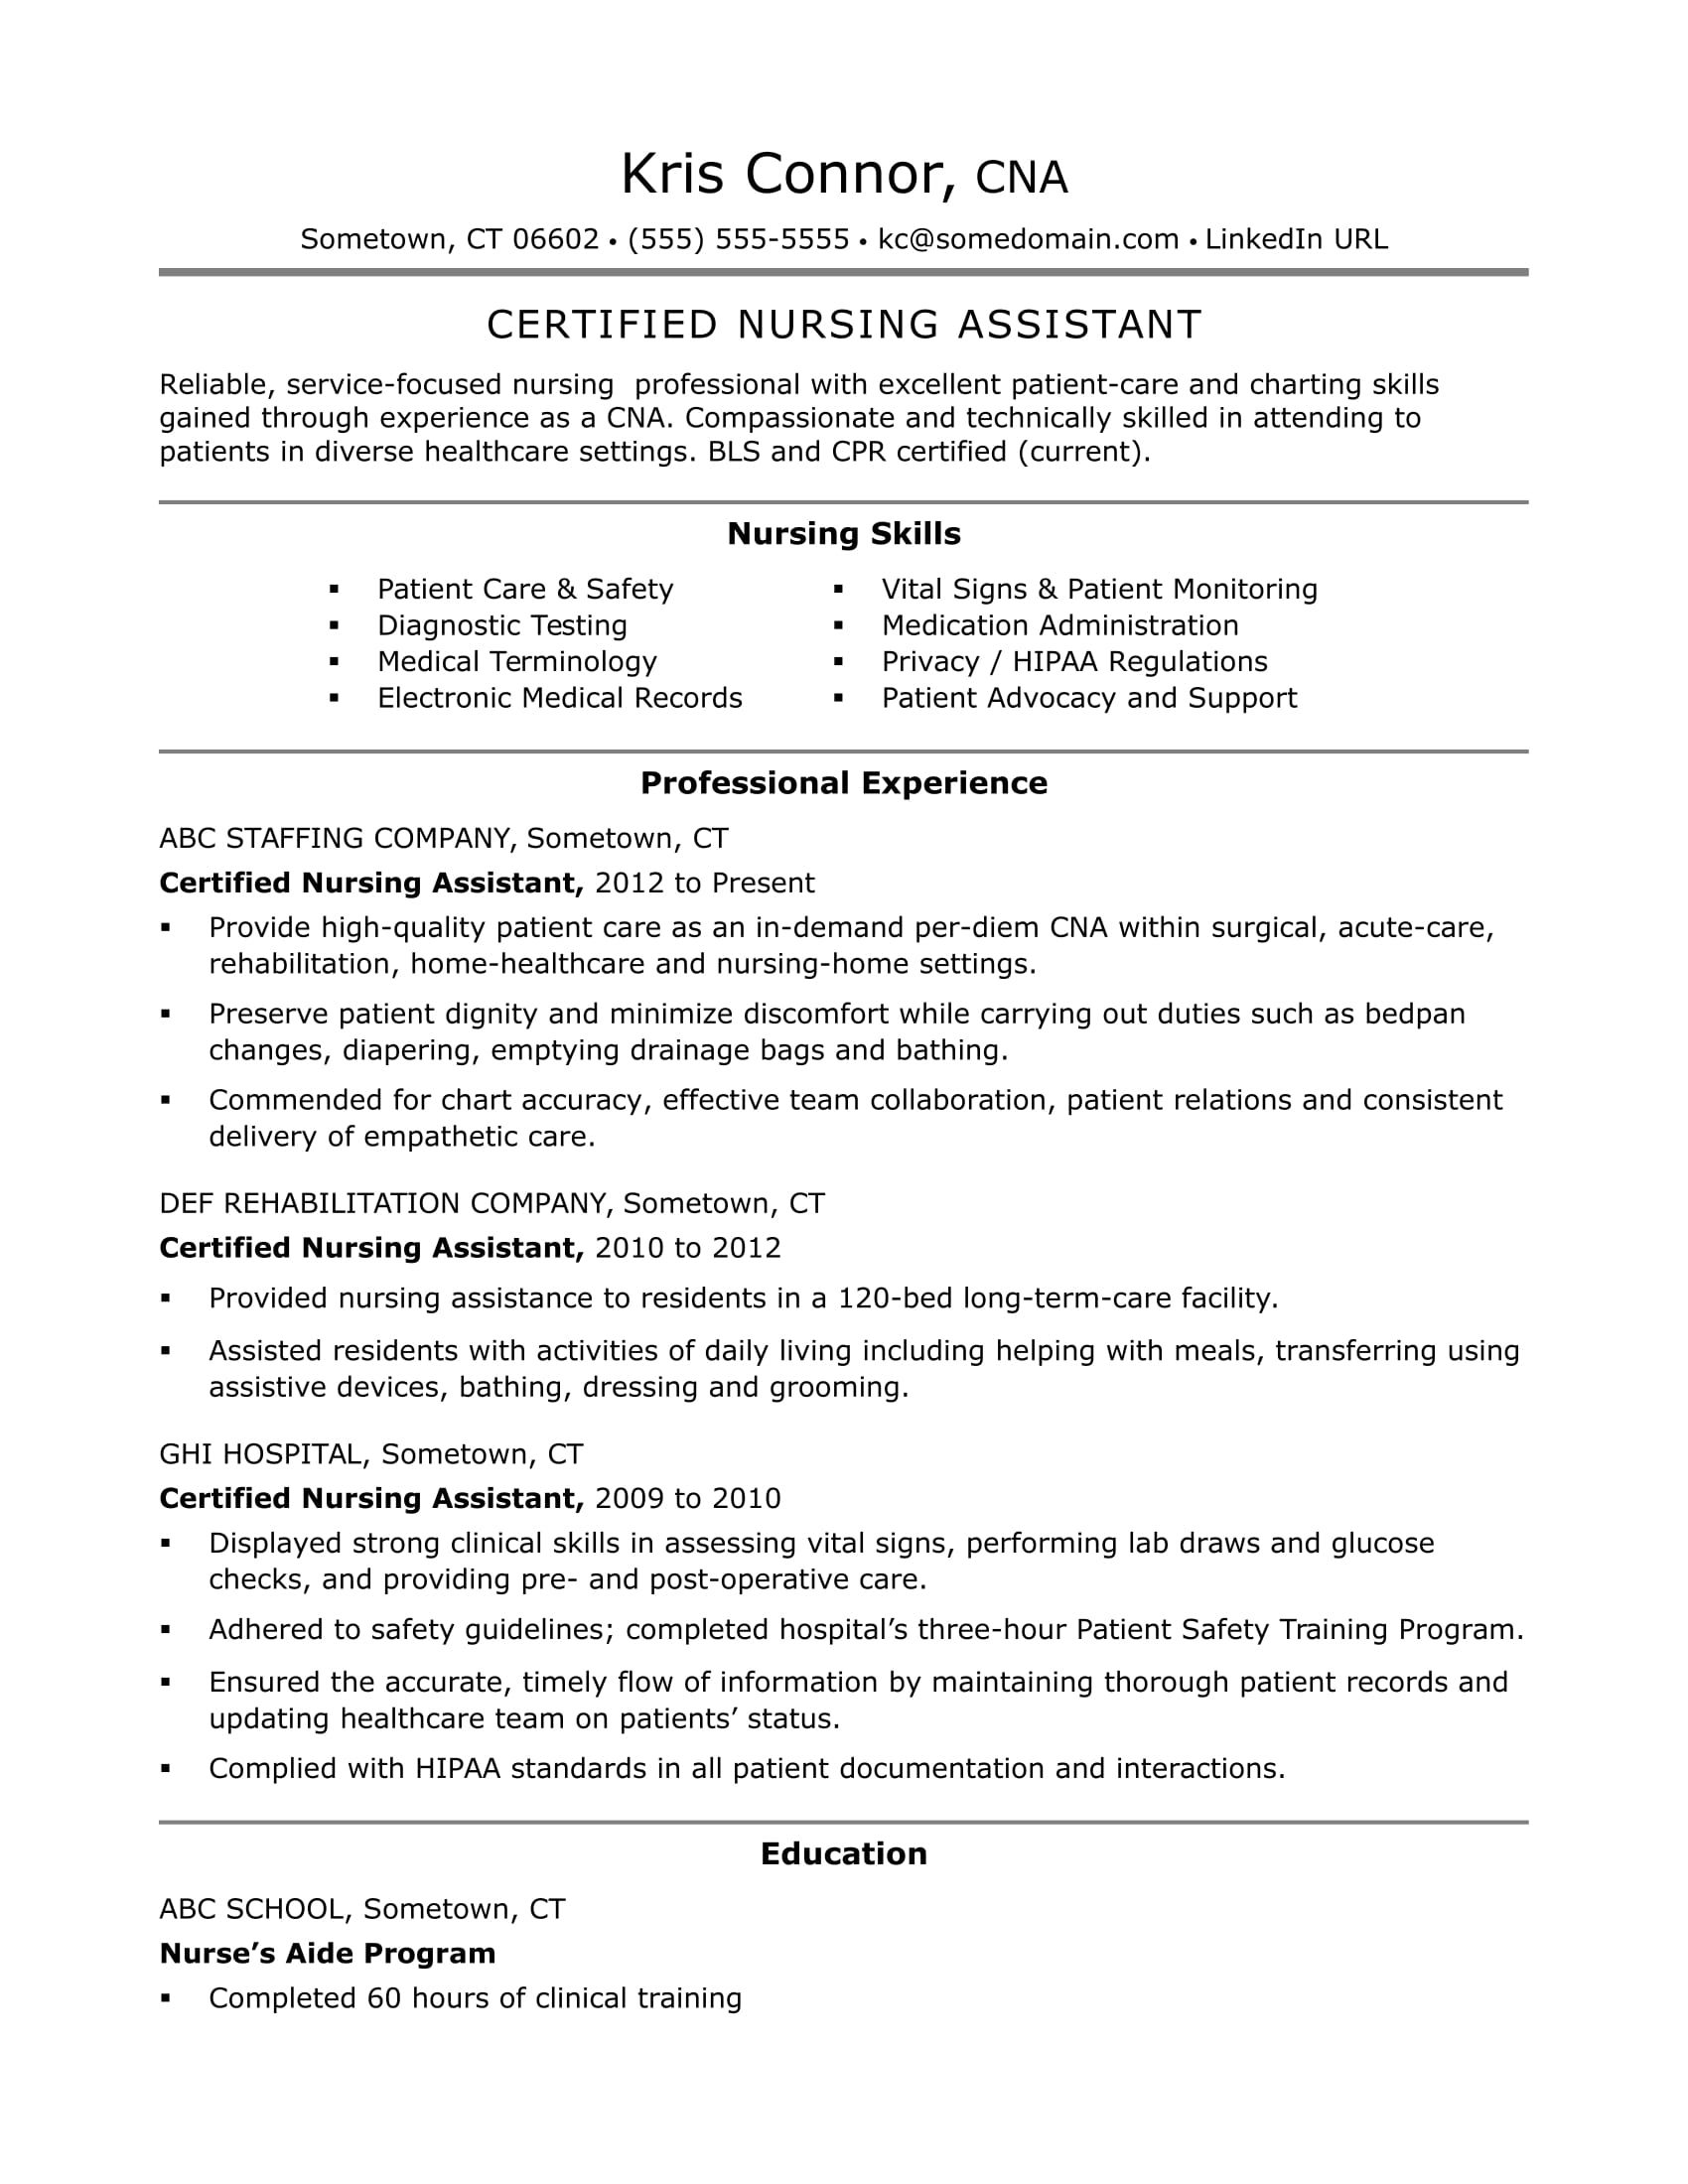 Superior CNA Resume Example Within Rehab Nurse Resume